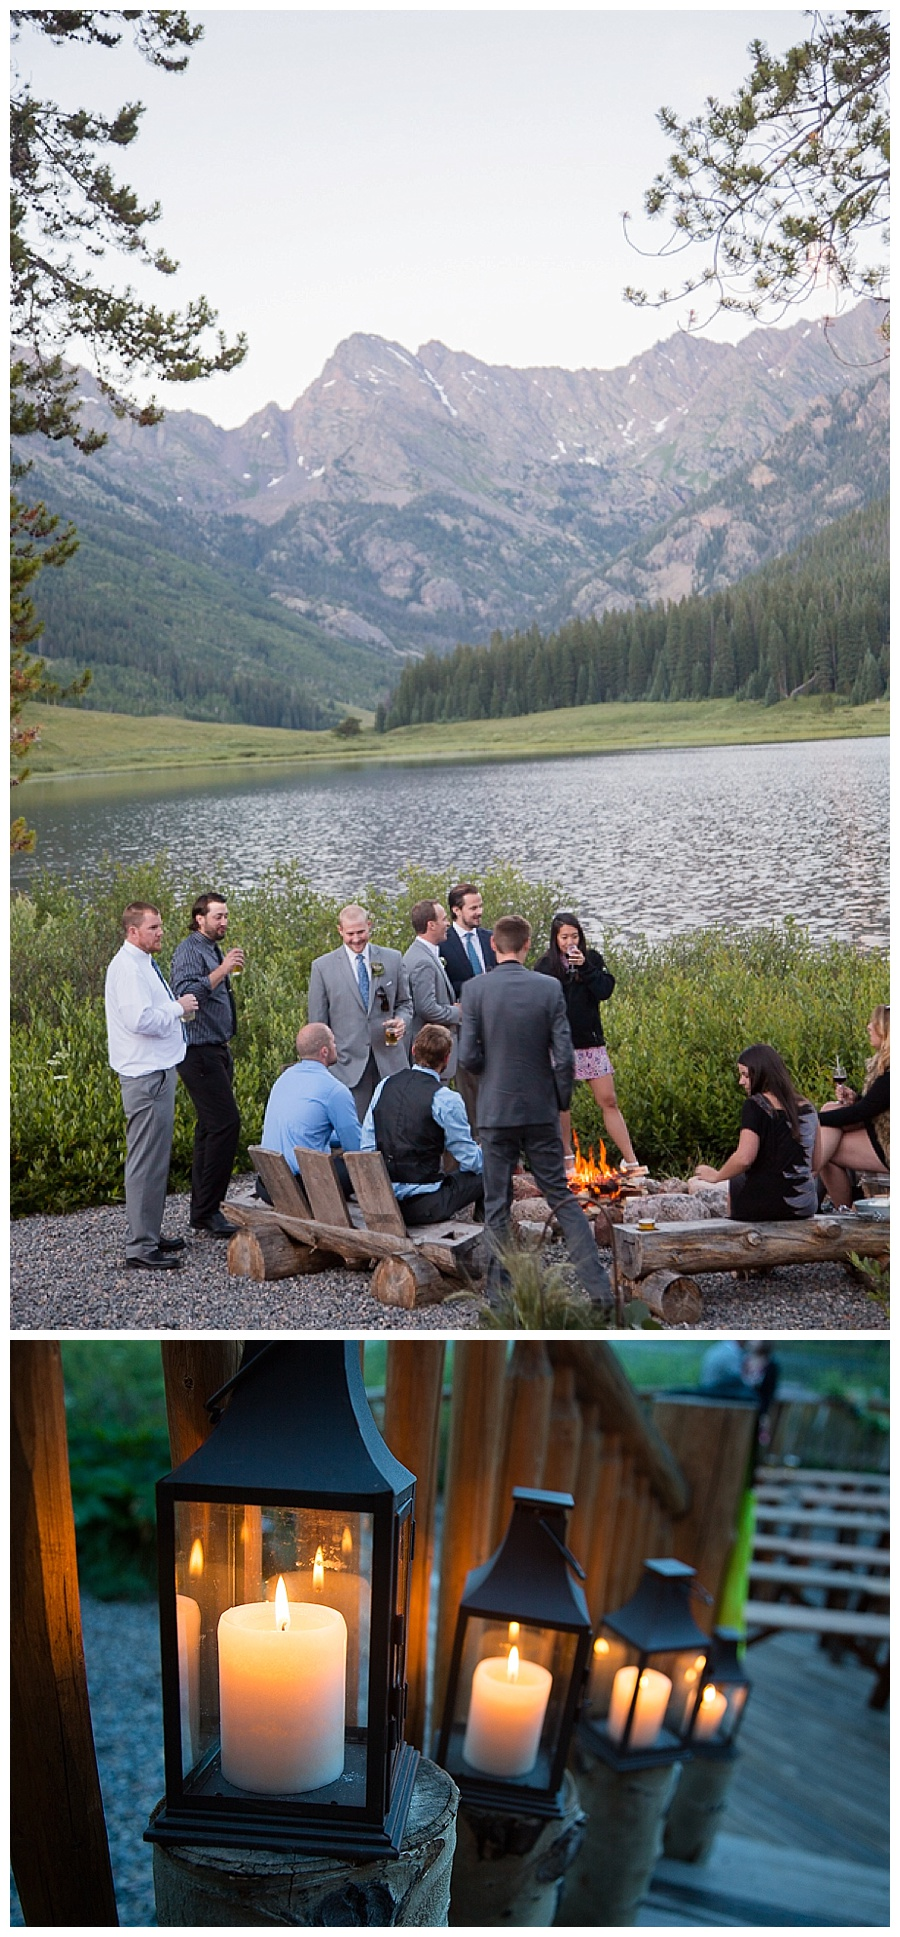 24 Wedding guests by campfire Piney River Ranch